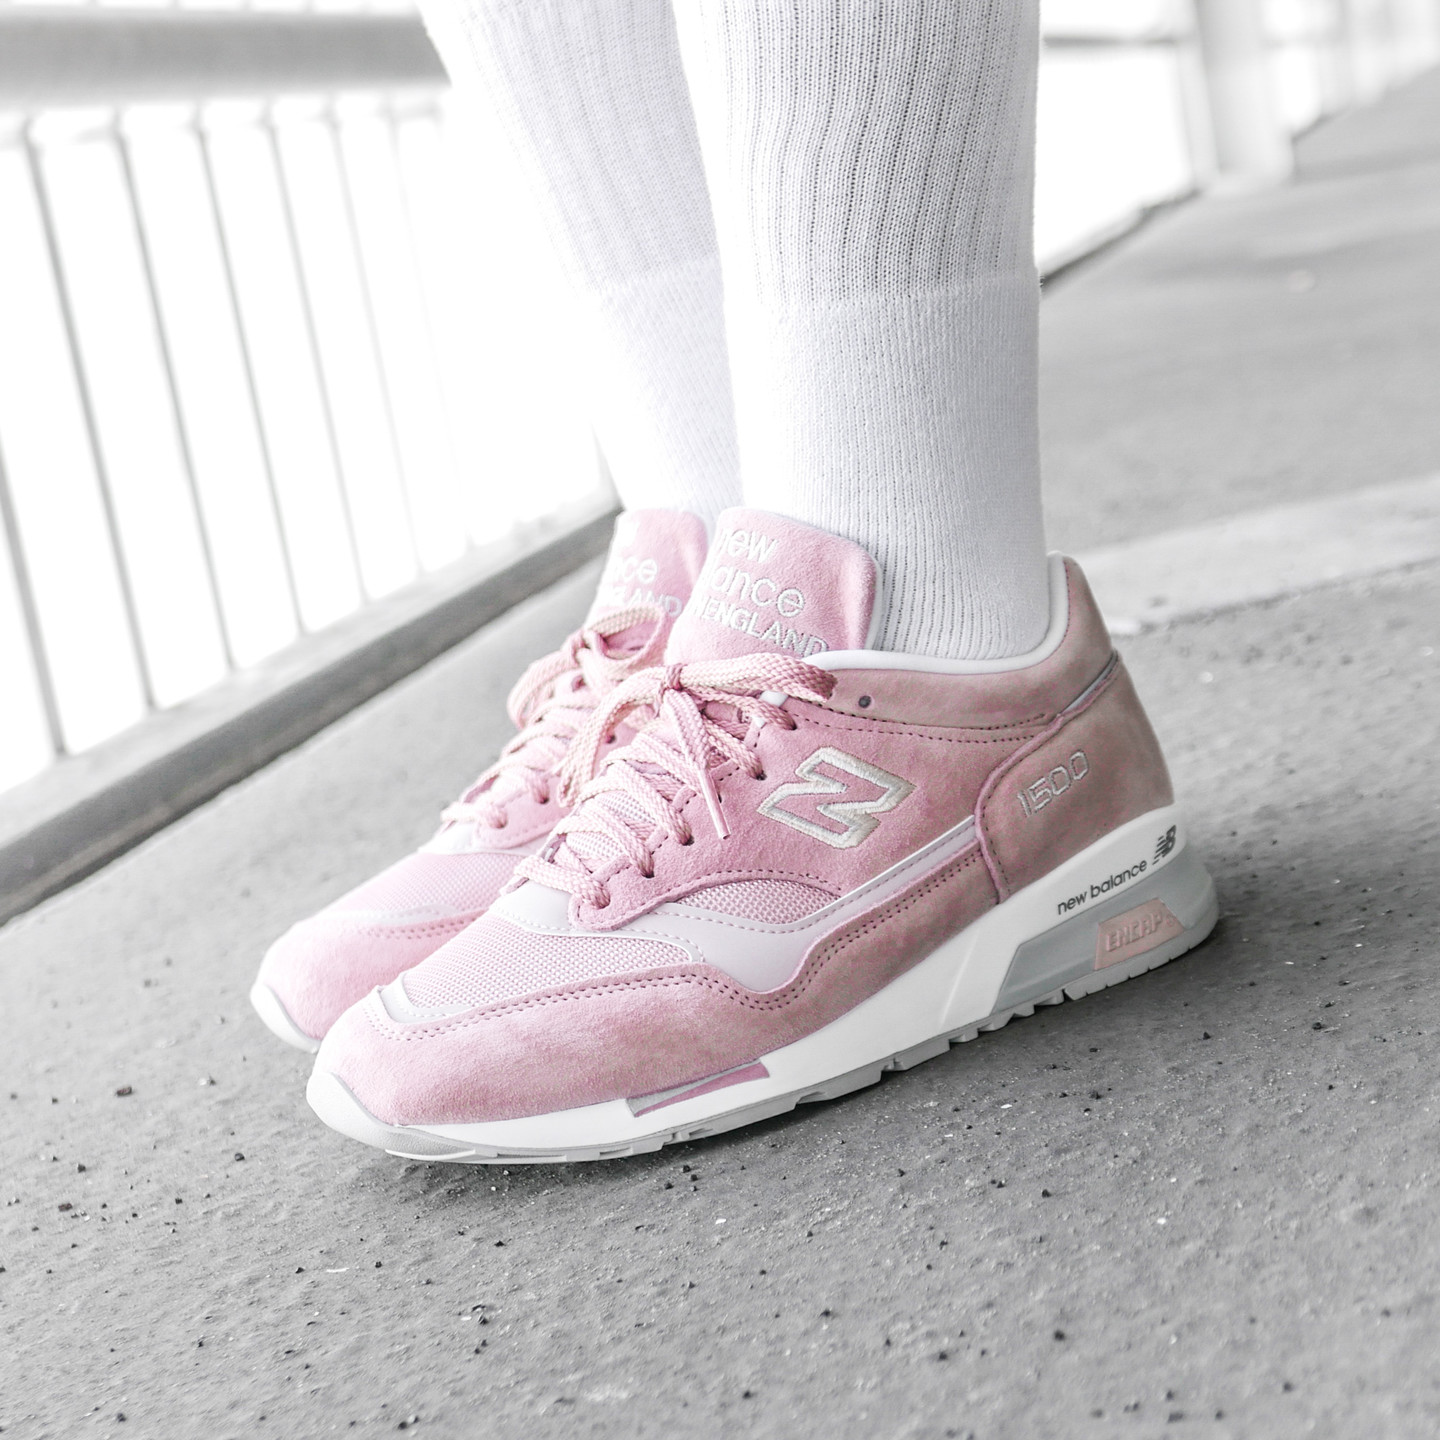 New Balance M1500 JCO - Made in England Light Pink / Grey M1500JCO